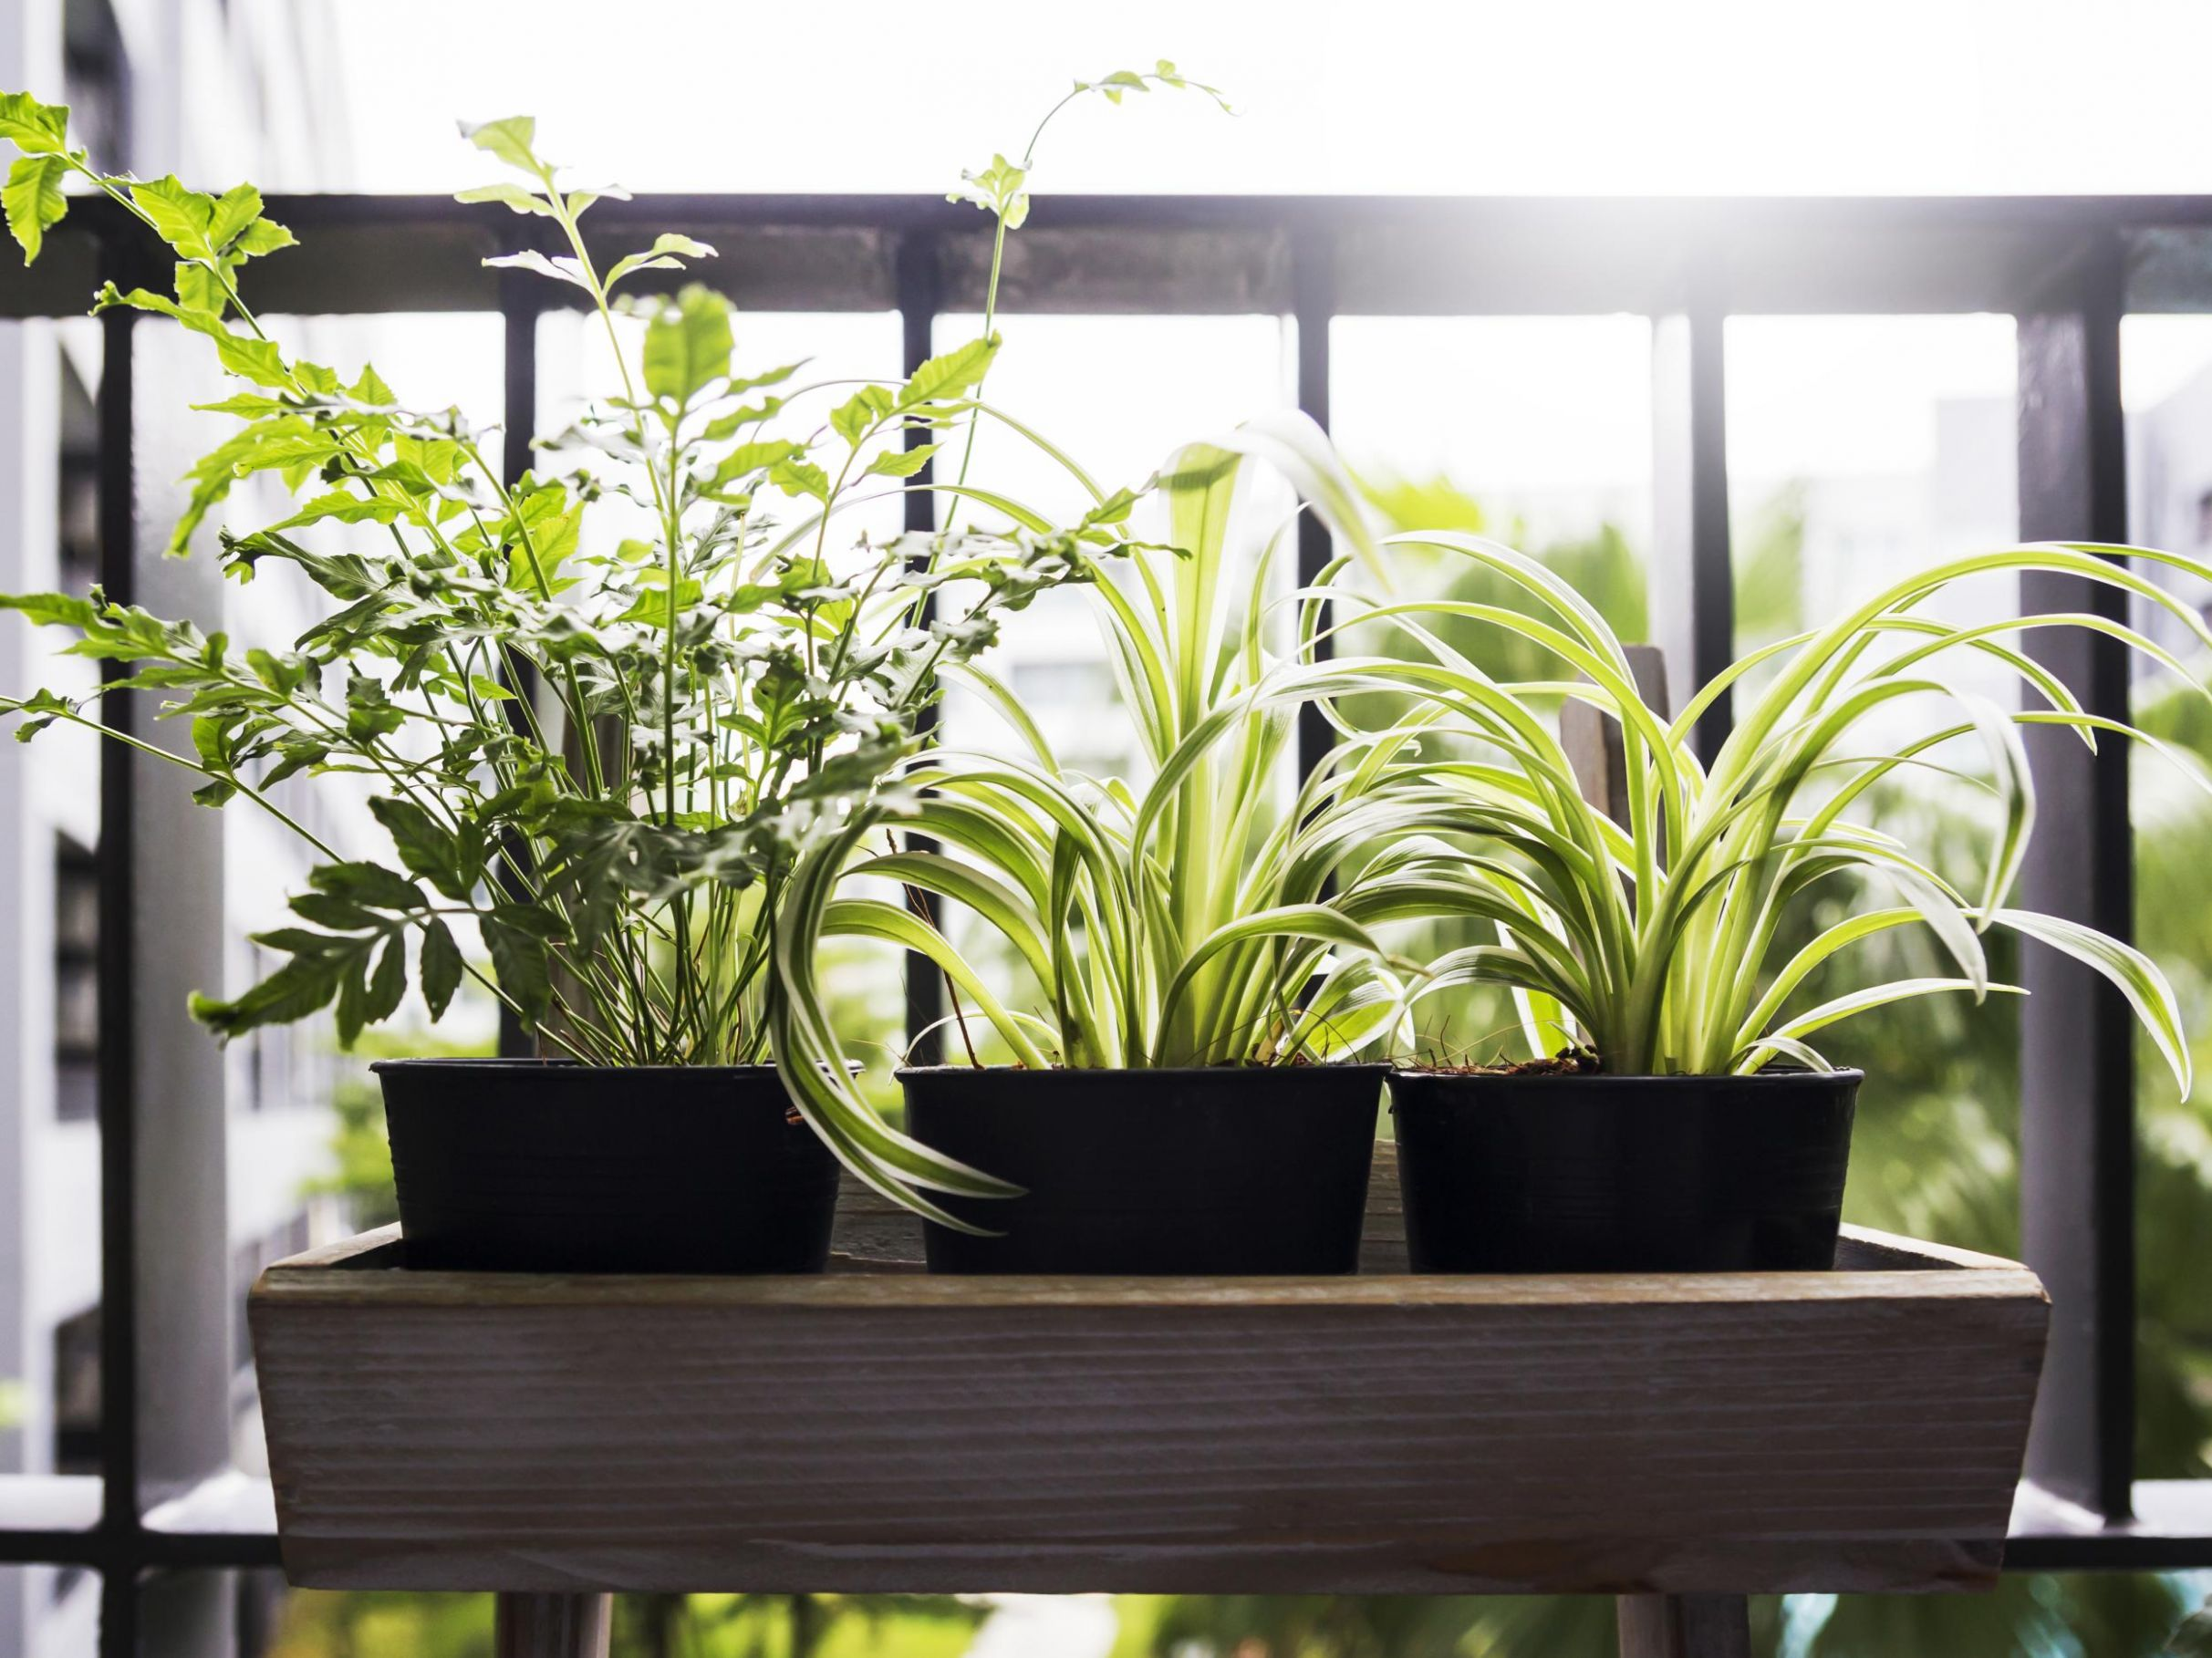 10 best balcony planters | The Independent - balcony planting ideas uk